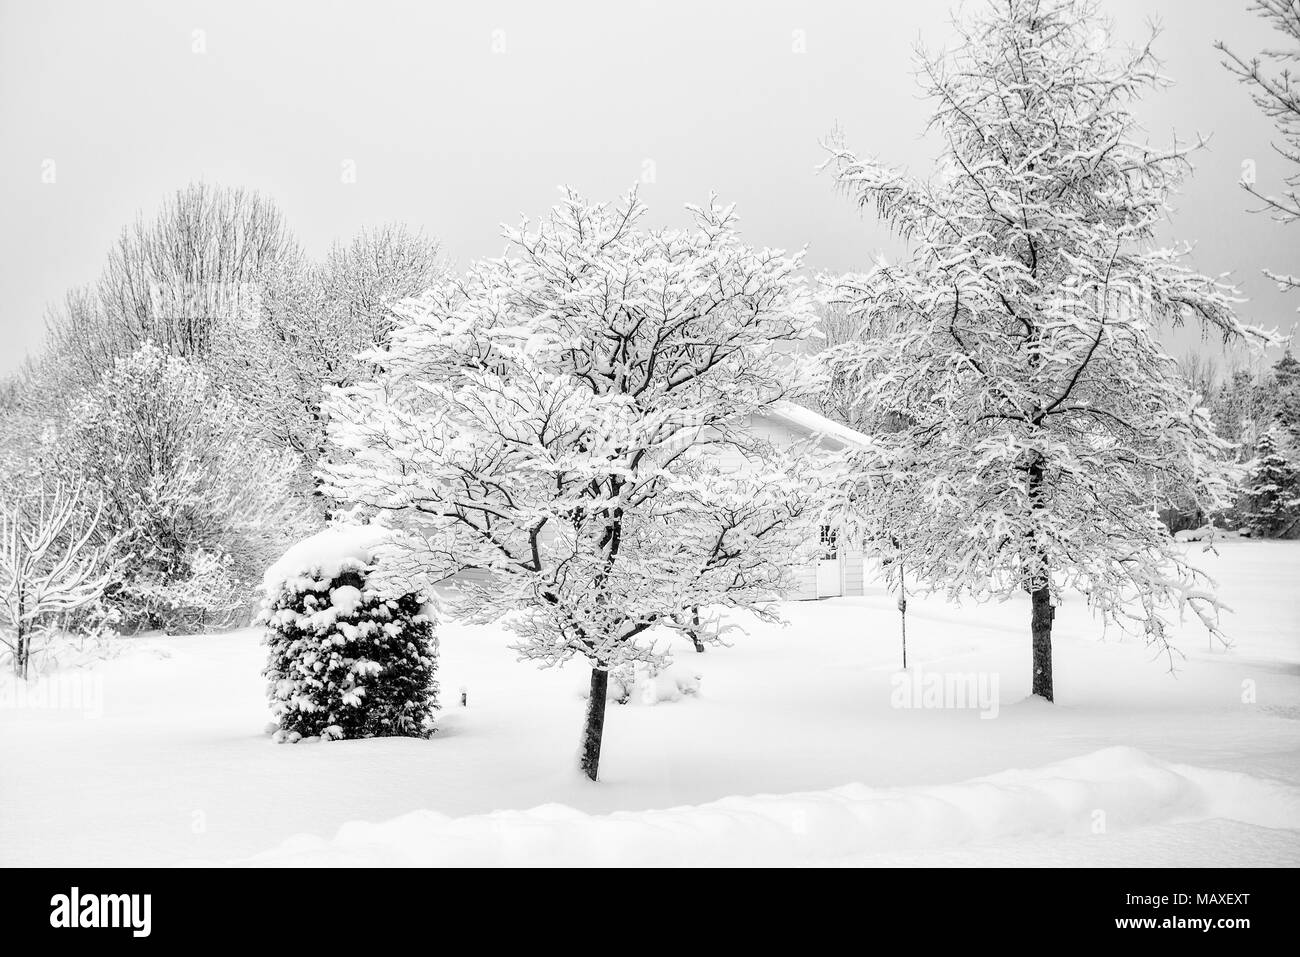 snow covered trees, Canada, Ontario, Meaford - Stock Image